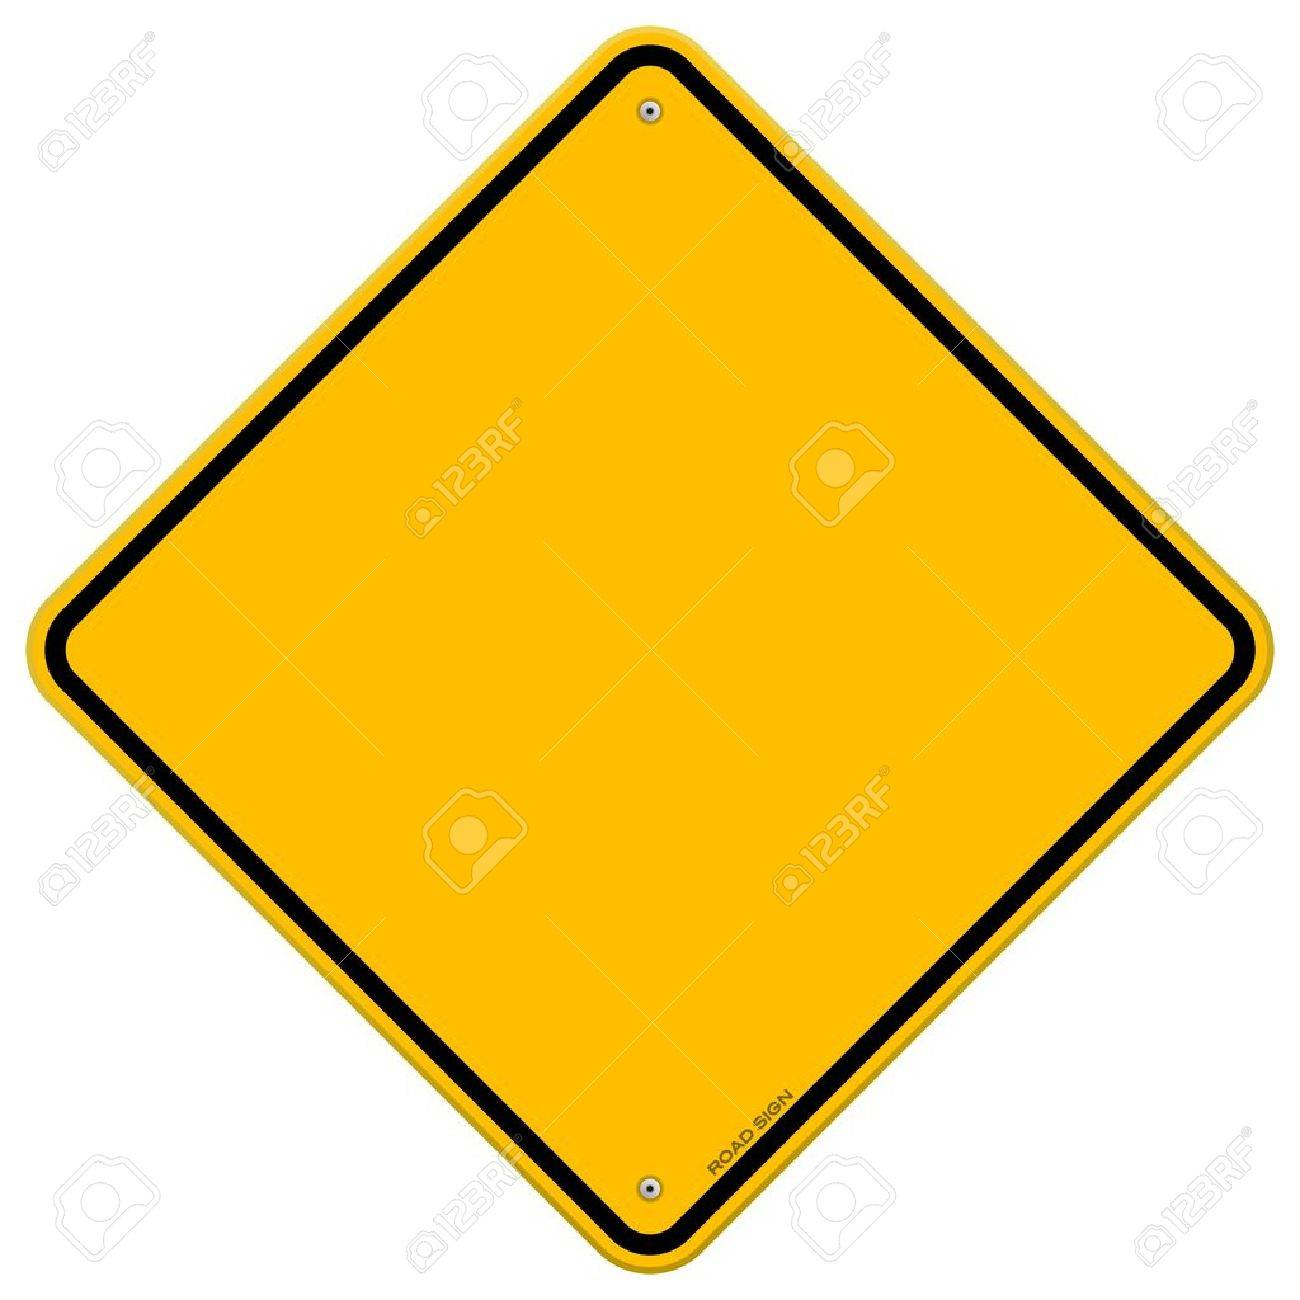 Isolated Blank Yellow Sign Stock Vector - 15149244